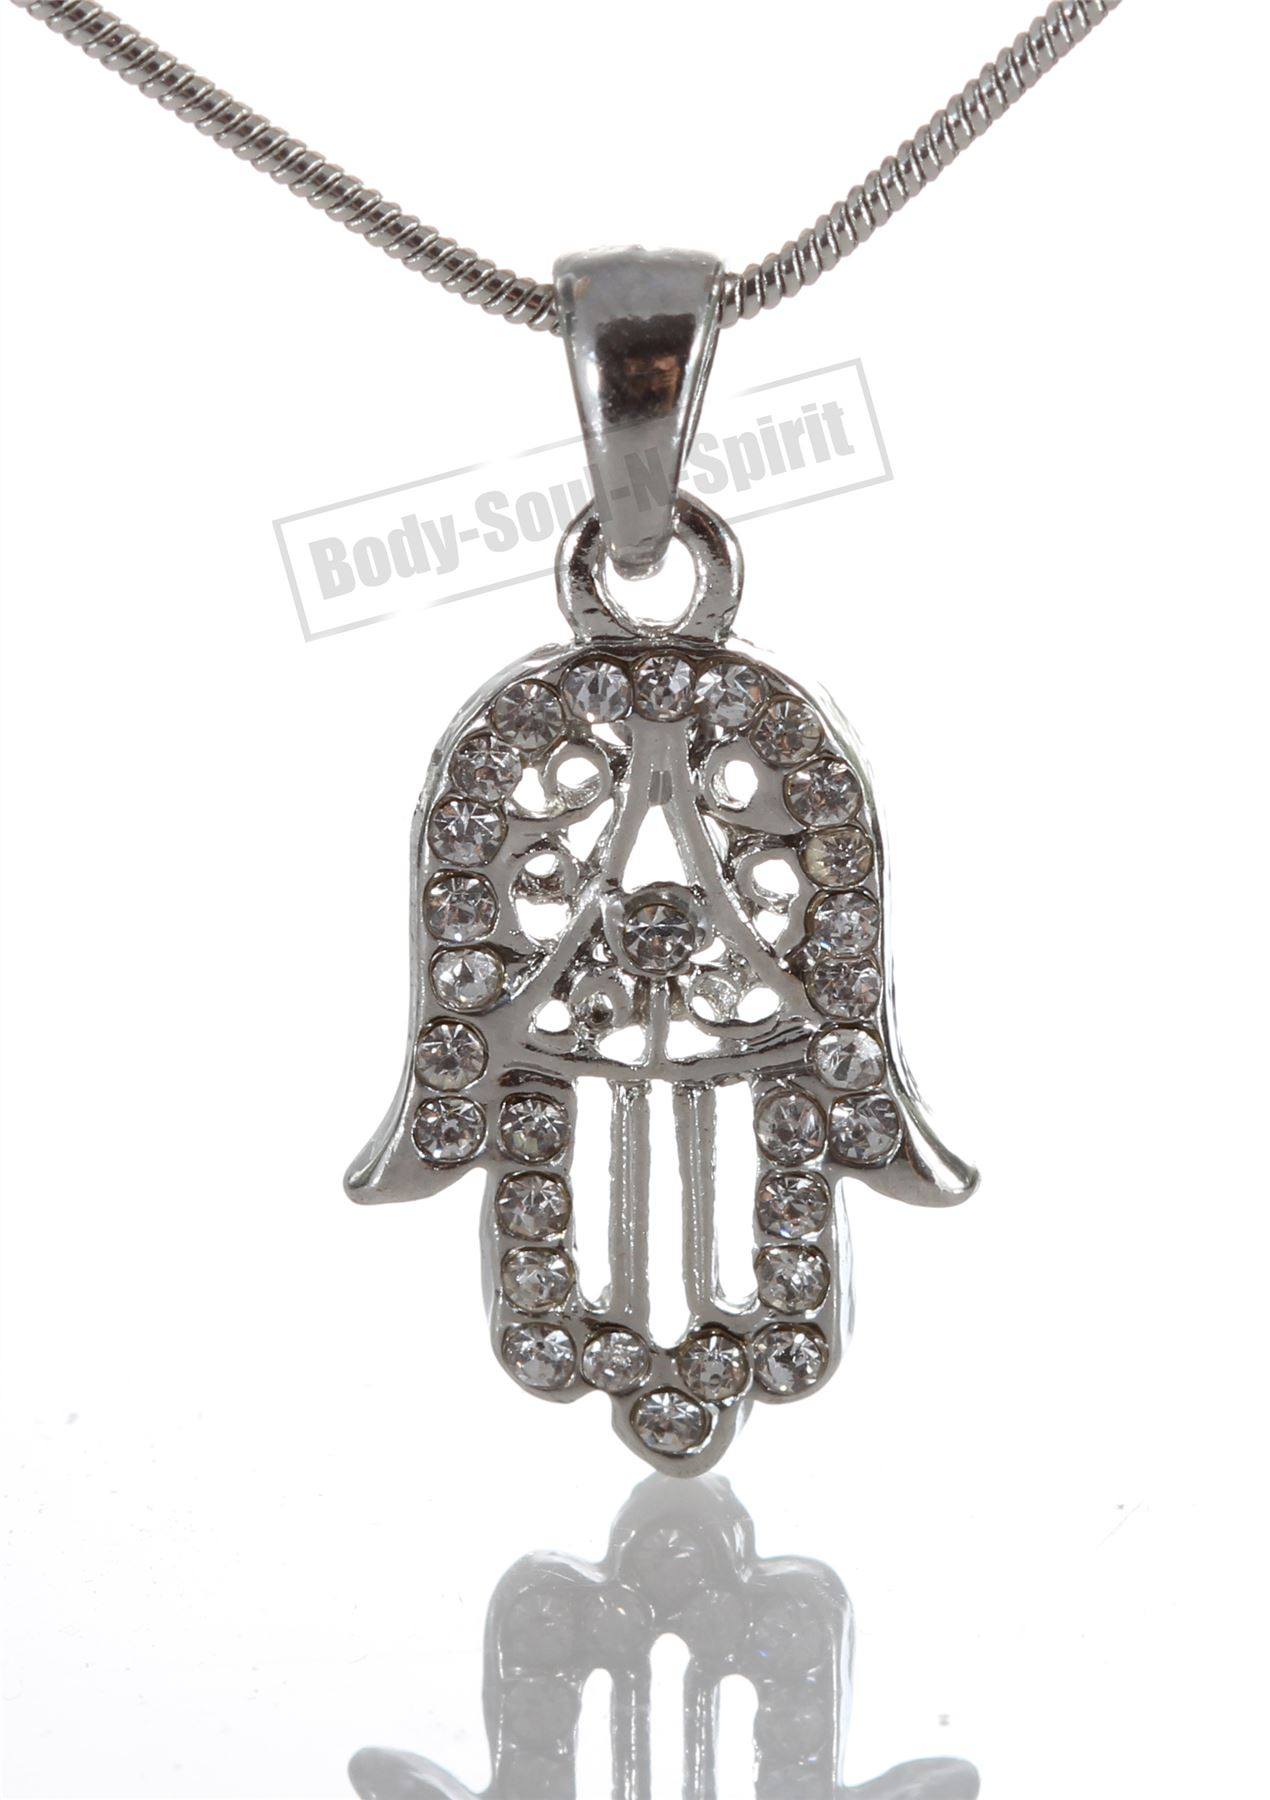 Jewish lucky charm hamsa necklace silver plated pendant judaica the hamsa arabic meaning five is an ancient hand shaped symbol of protection originating in the middle east predating judaism christianity and islam aloadofball